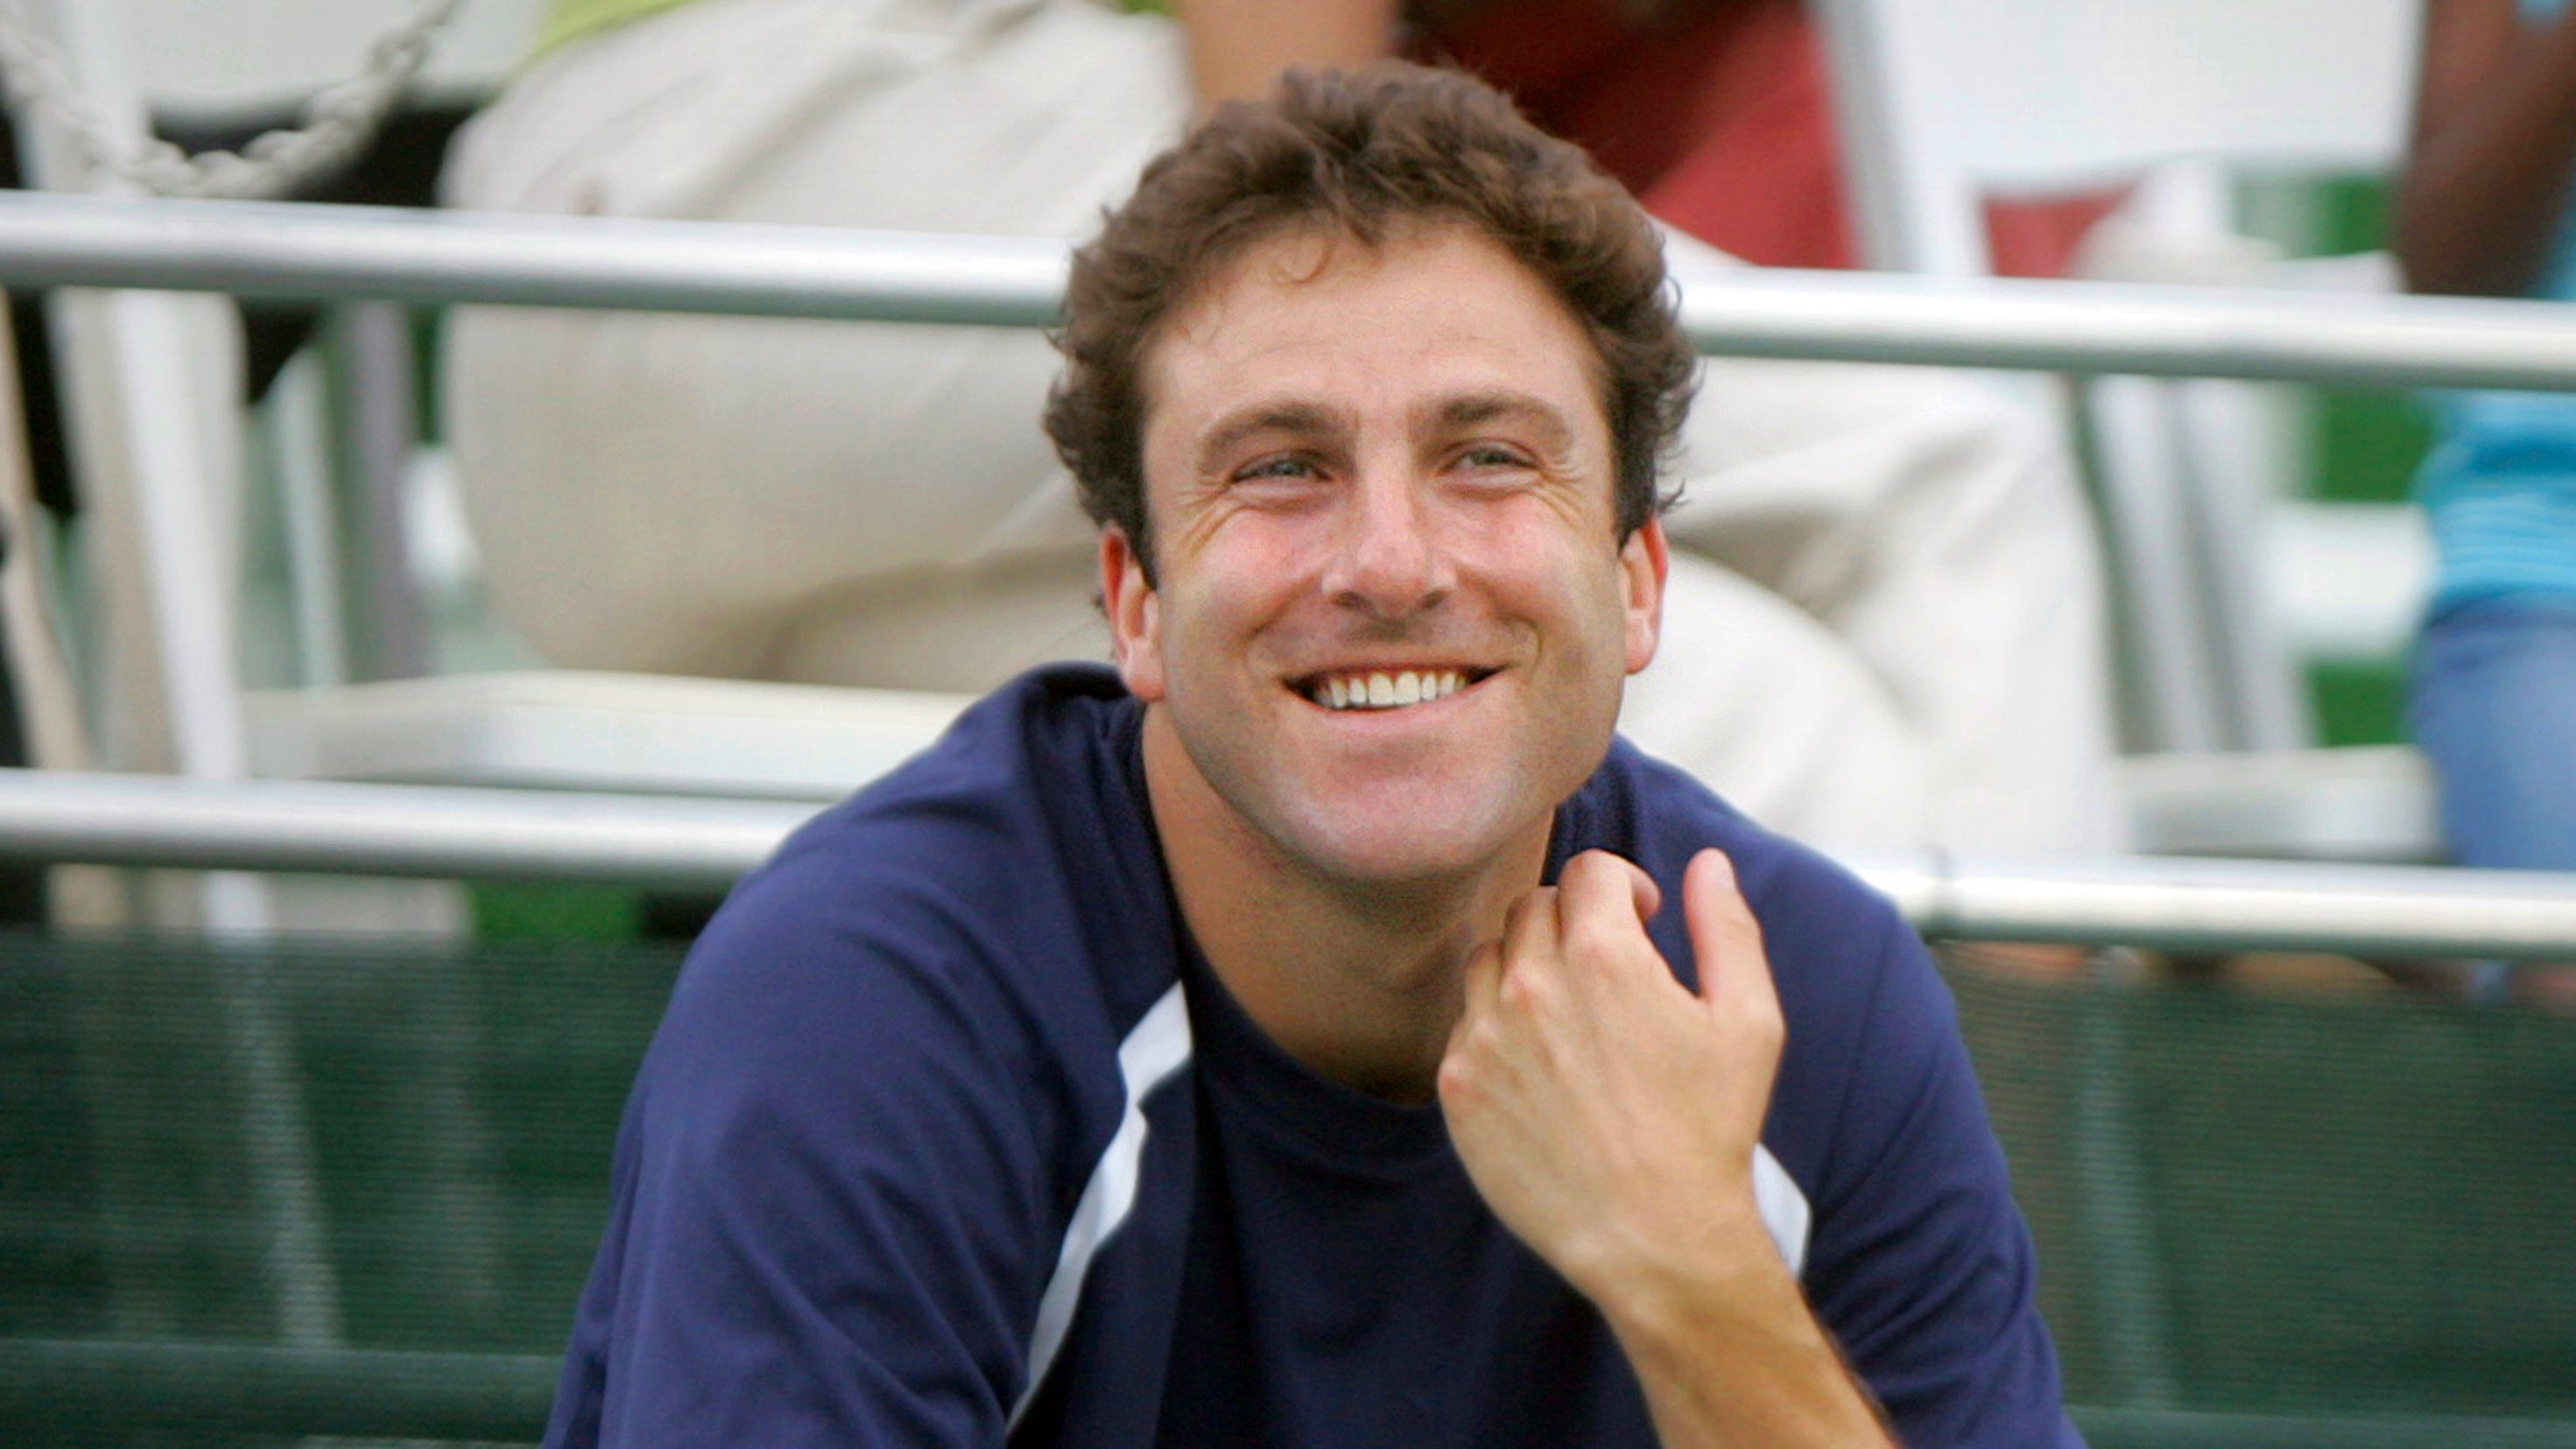 Justin Gimelstob, shown in July 2008 at a World Team Tennis match.